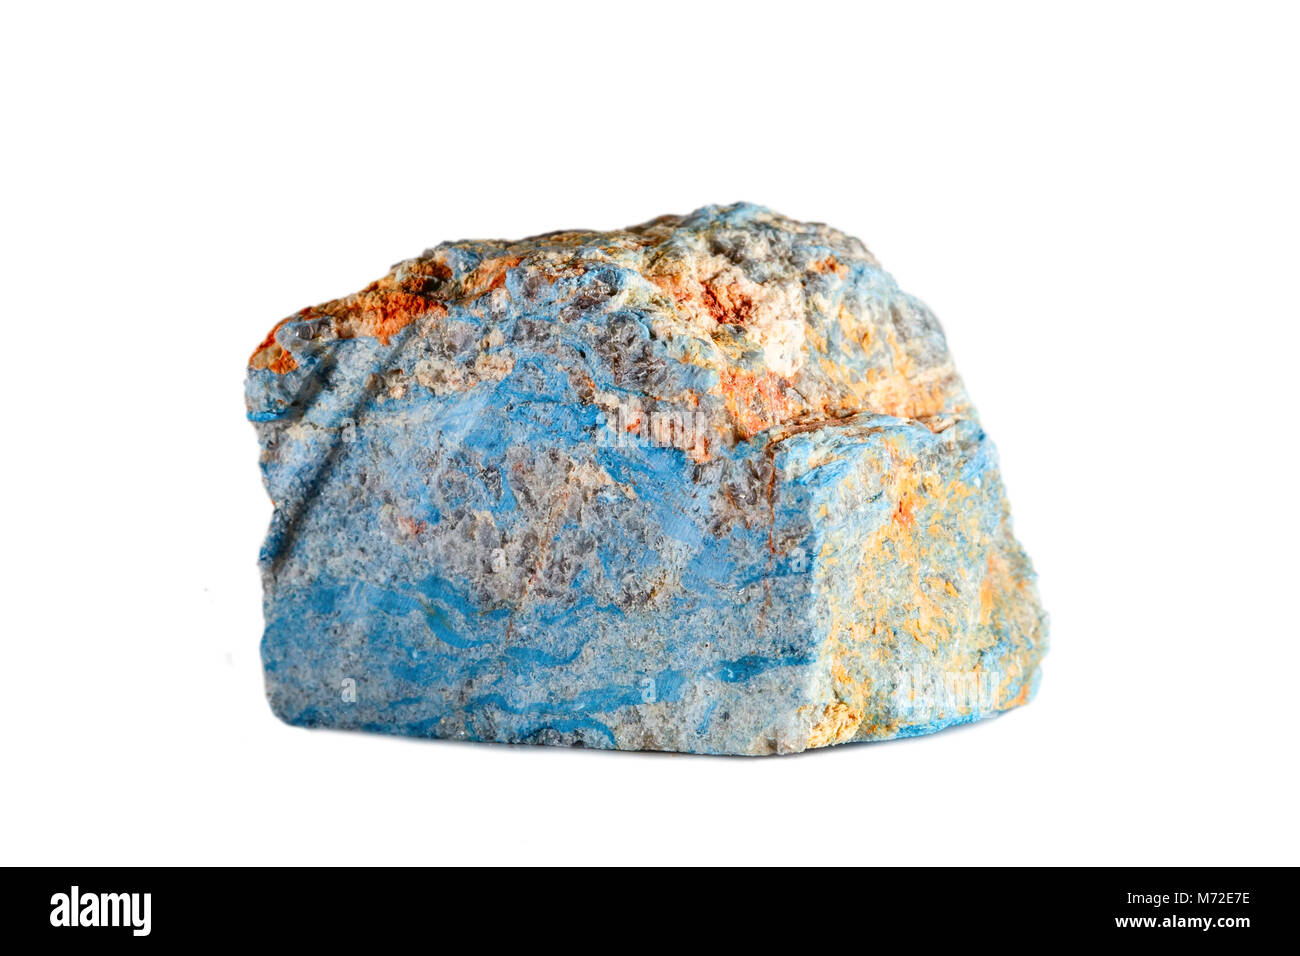 Macro shooting of natural gemstone. Raw mineral dumortierite. Madagascar. Isolated object on a white background. - Stock Image